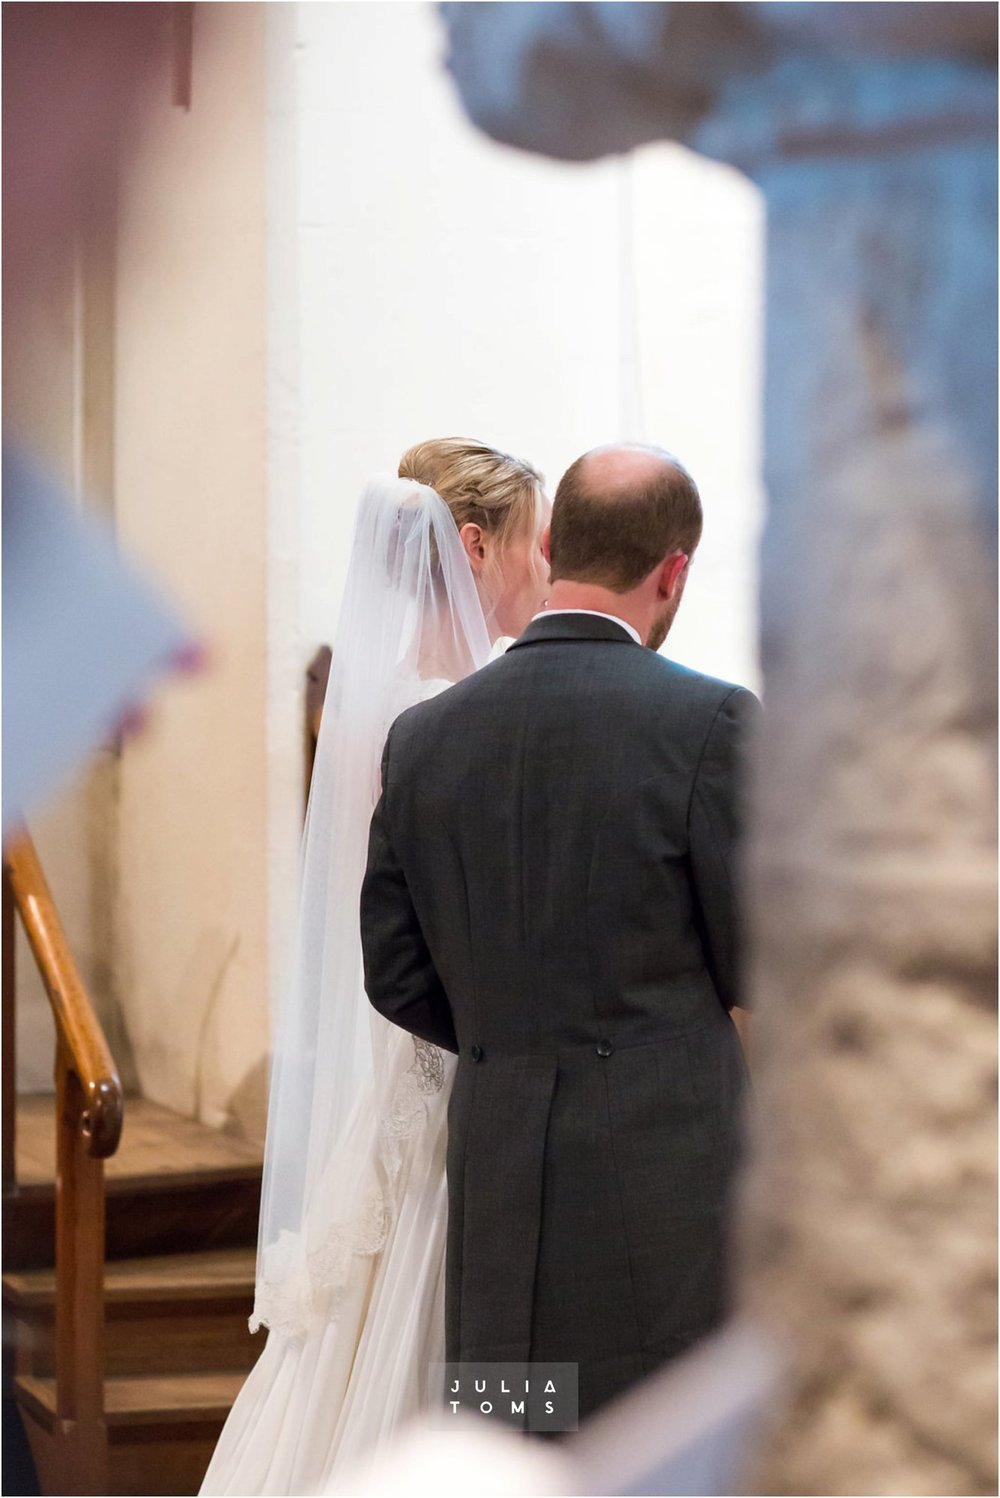 itchenor_wedding_chichester_photographer_029.jpg